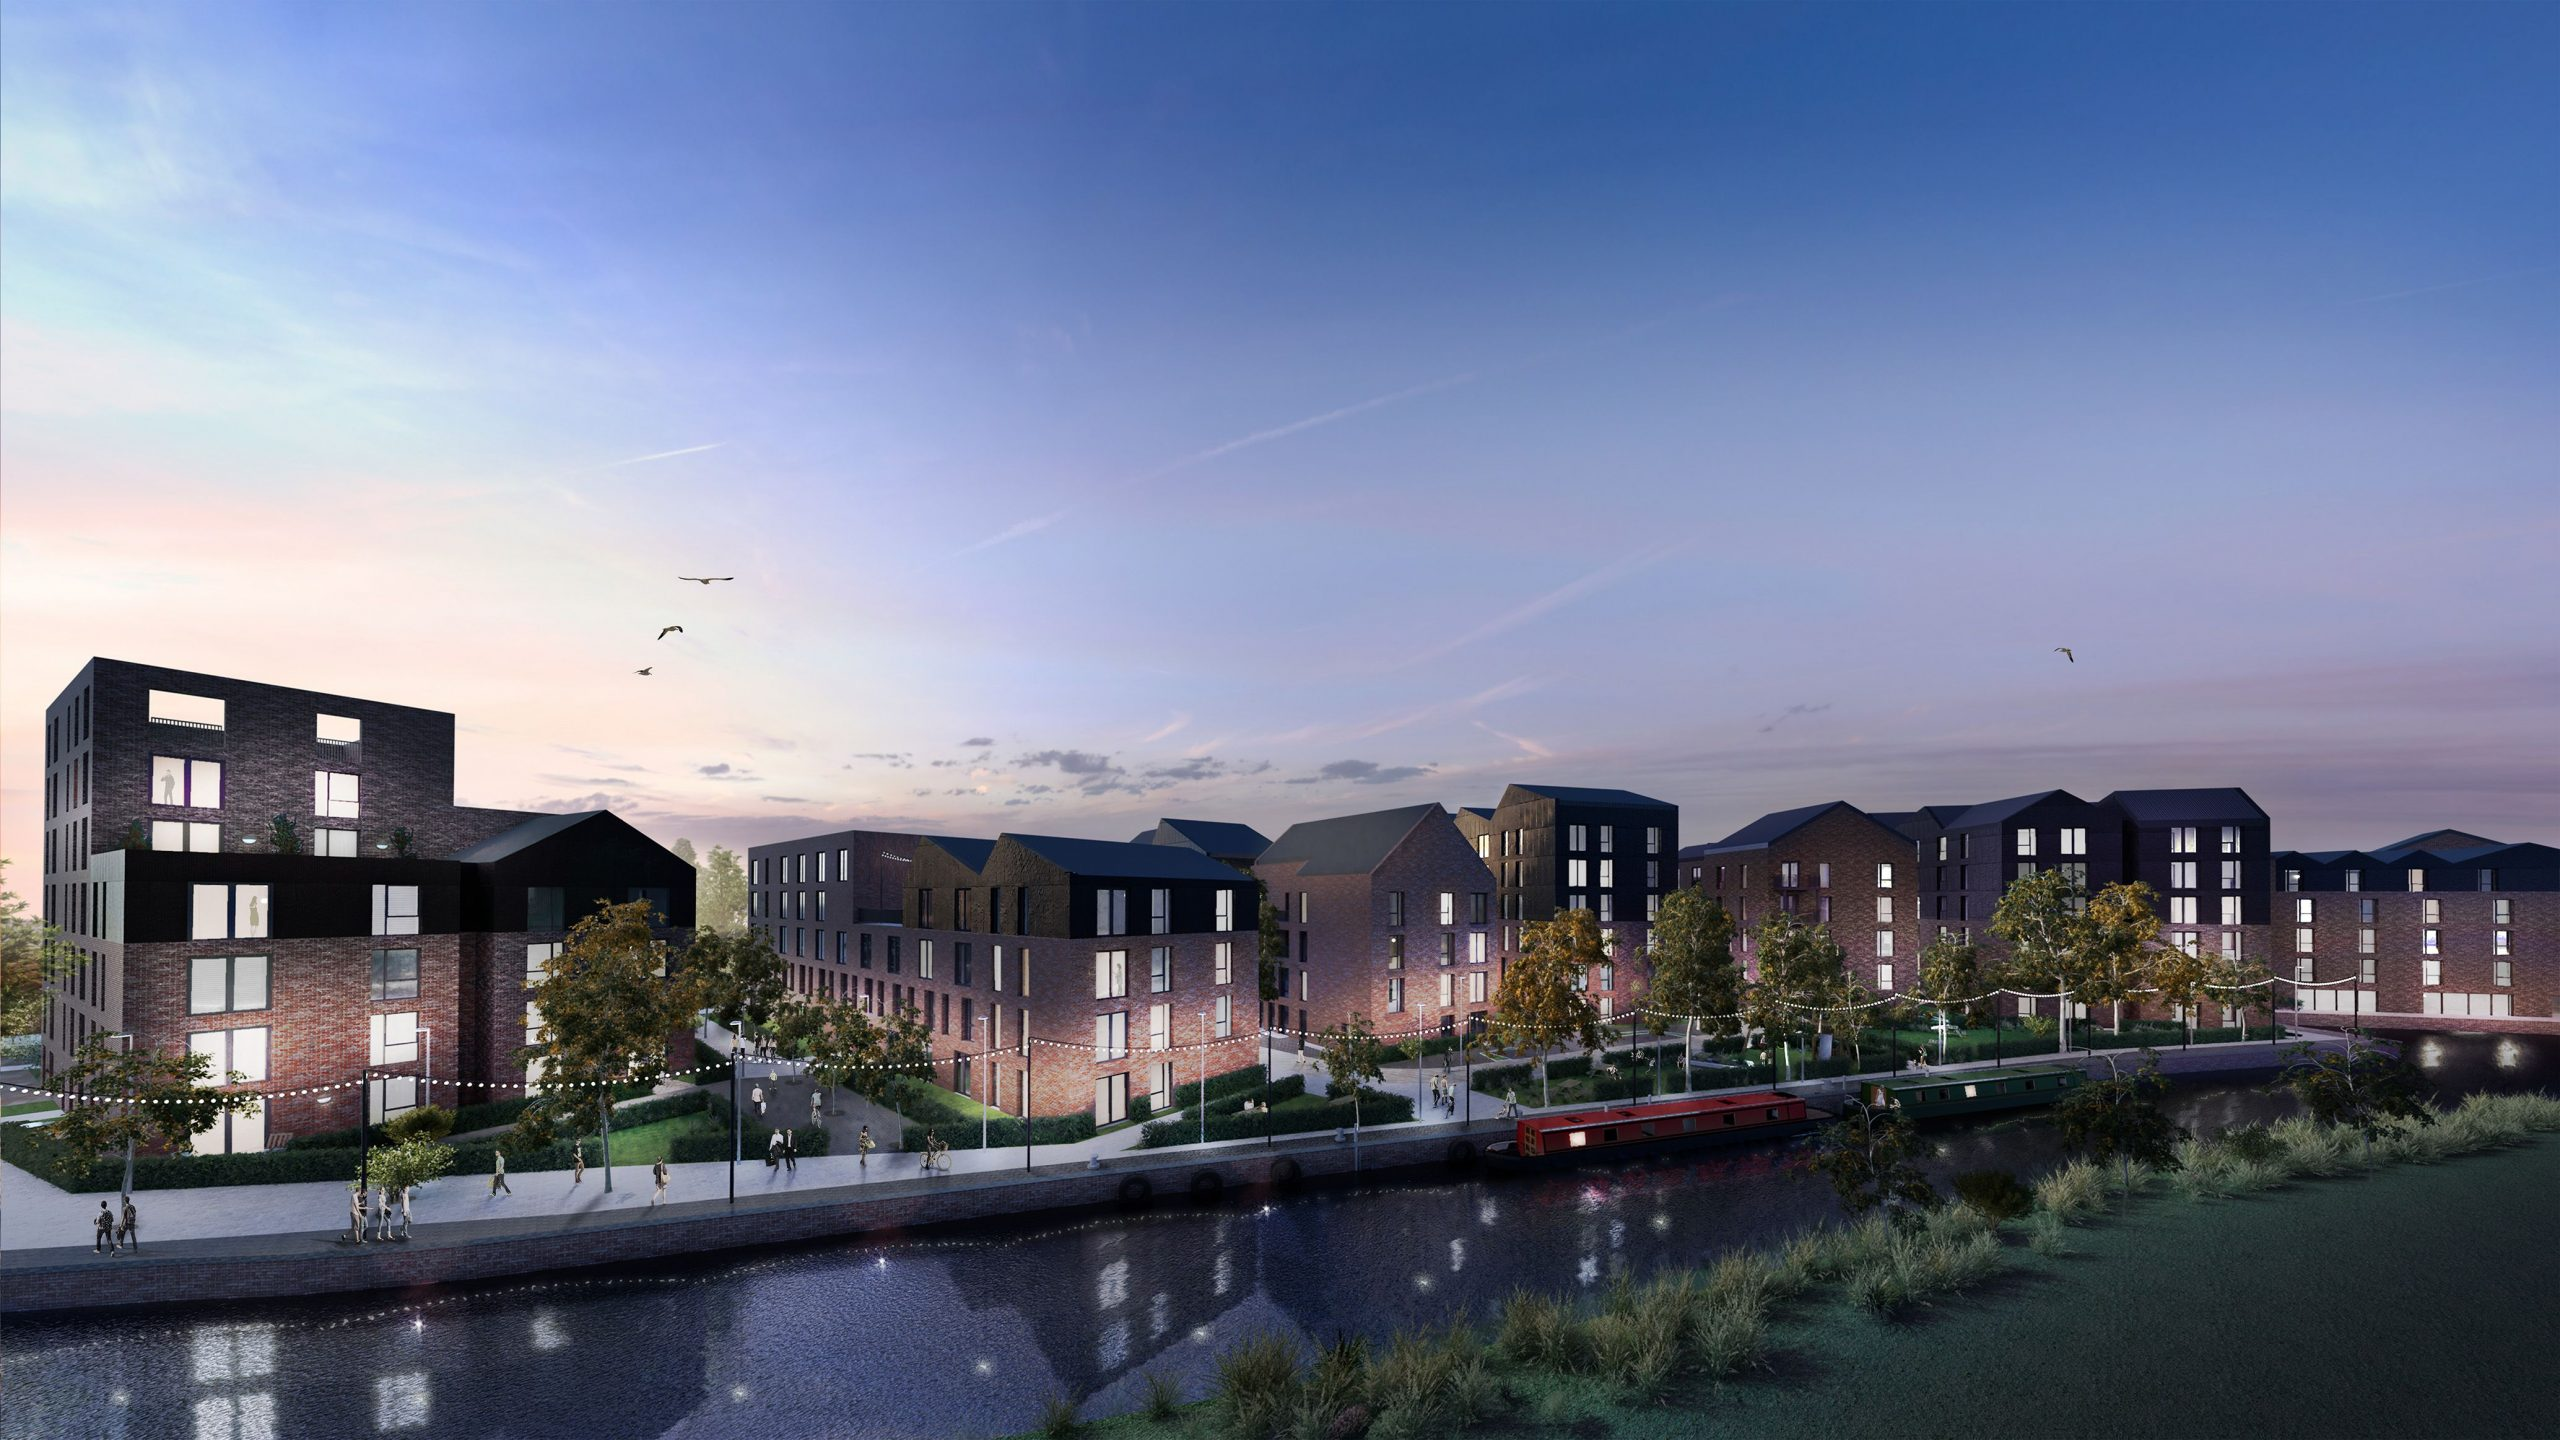 MAJOR CITY CENTRE REGENERATION PLANS SUBMITTED TO WOLVERHAMPTON COUNCIL